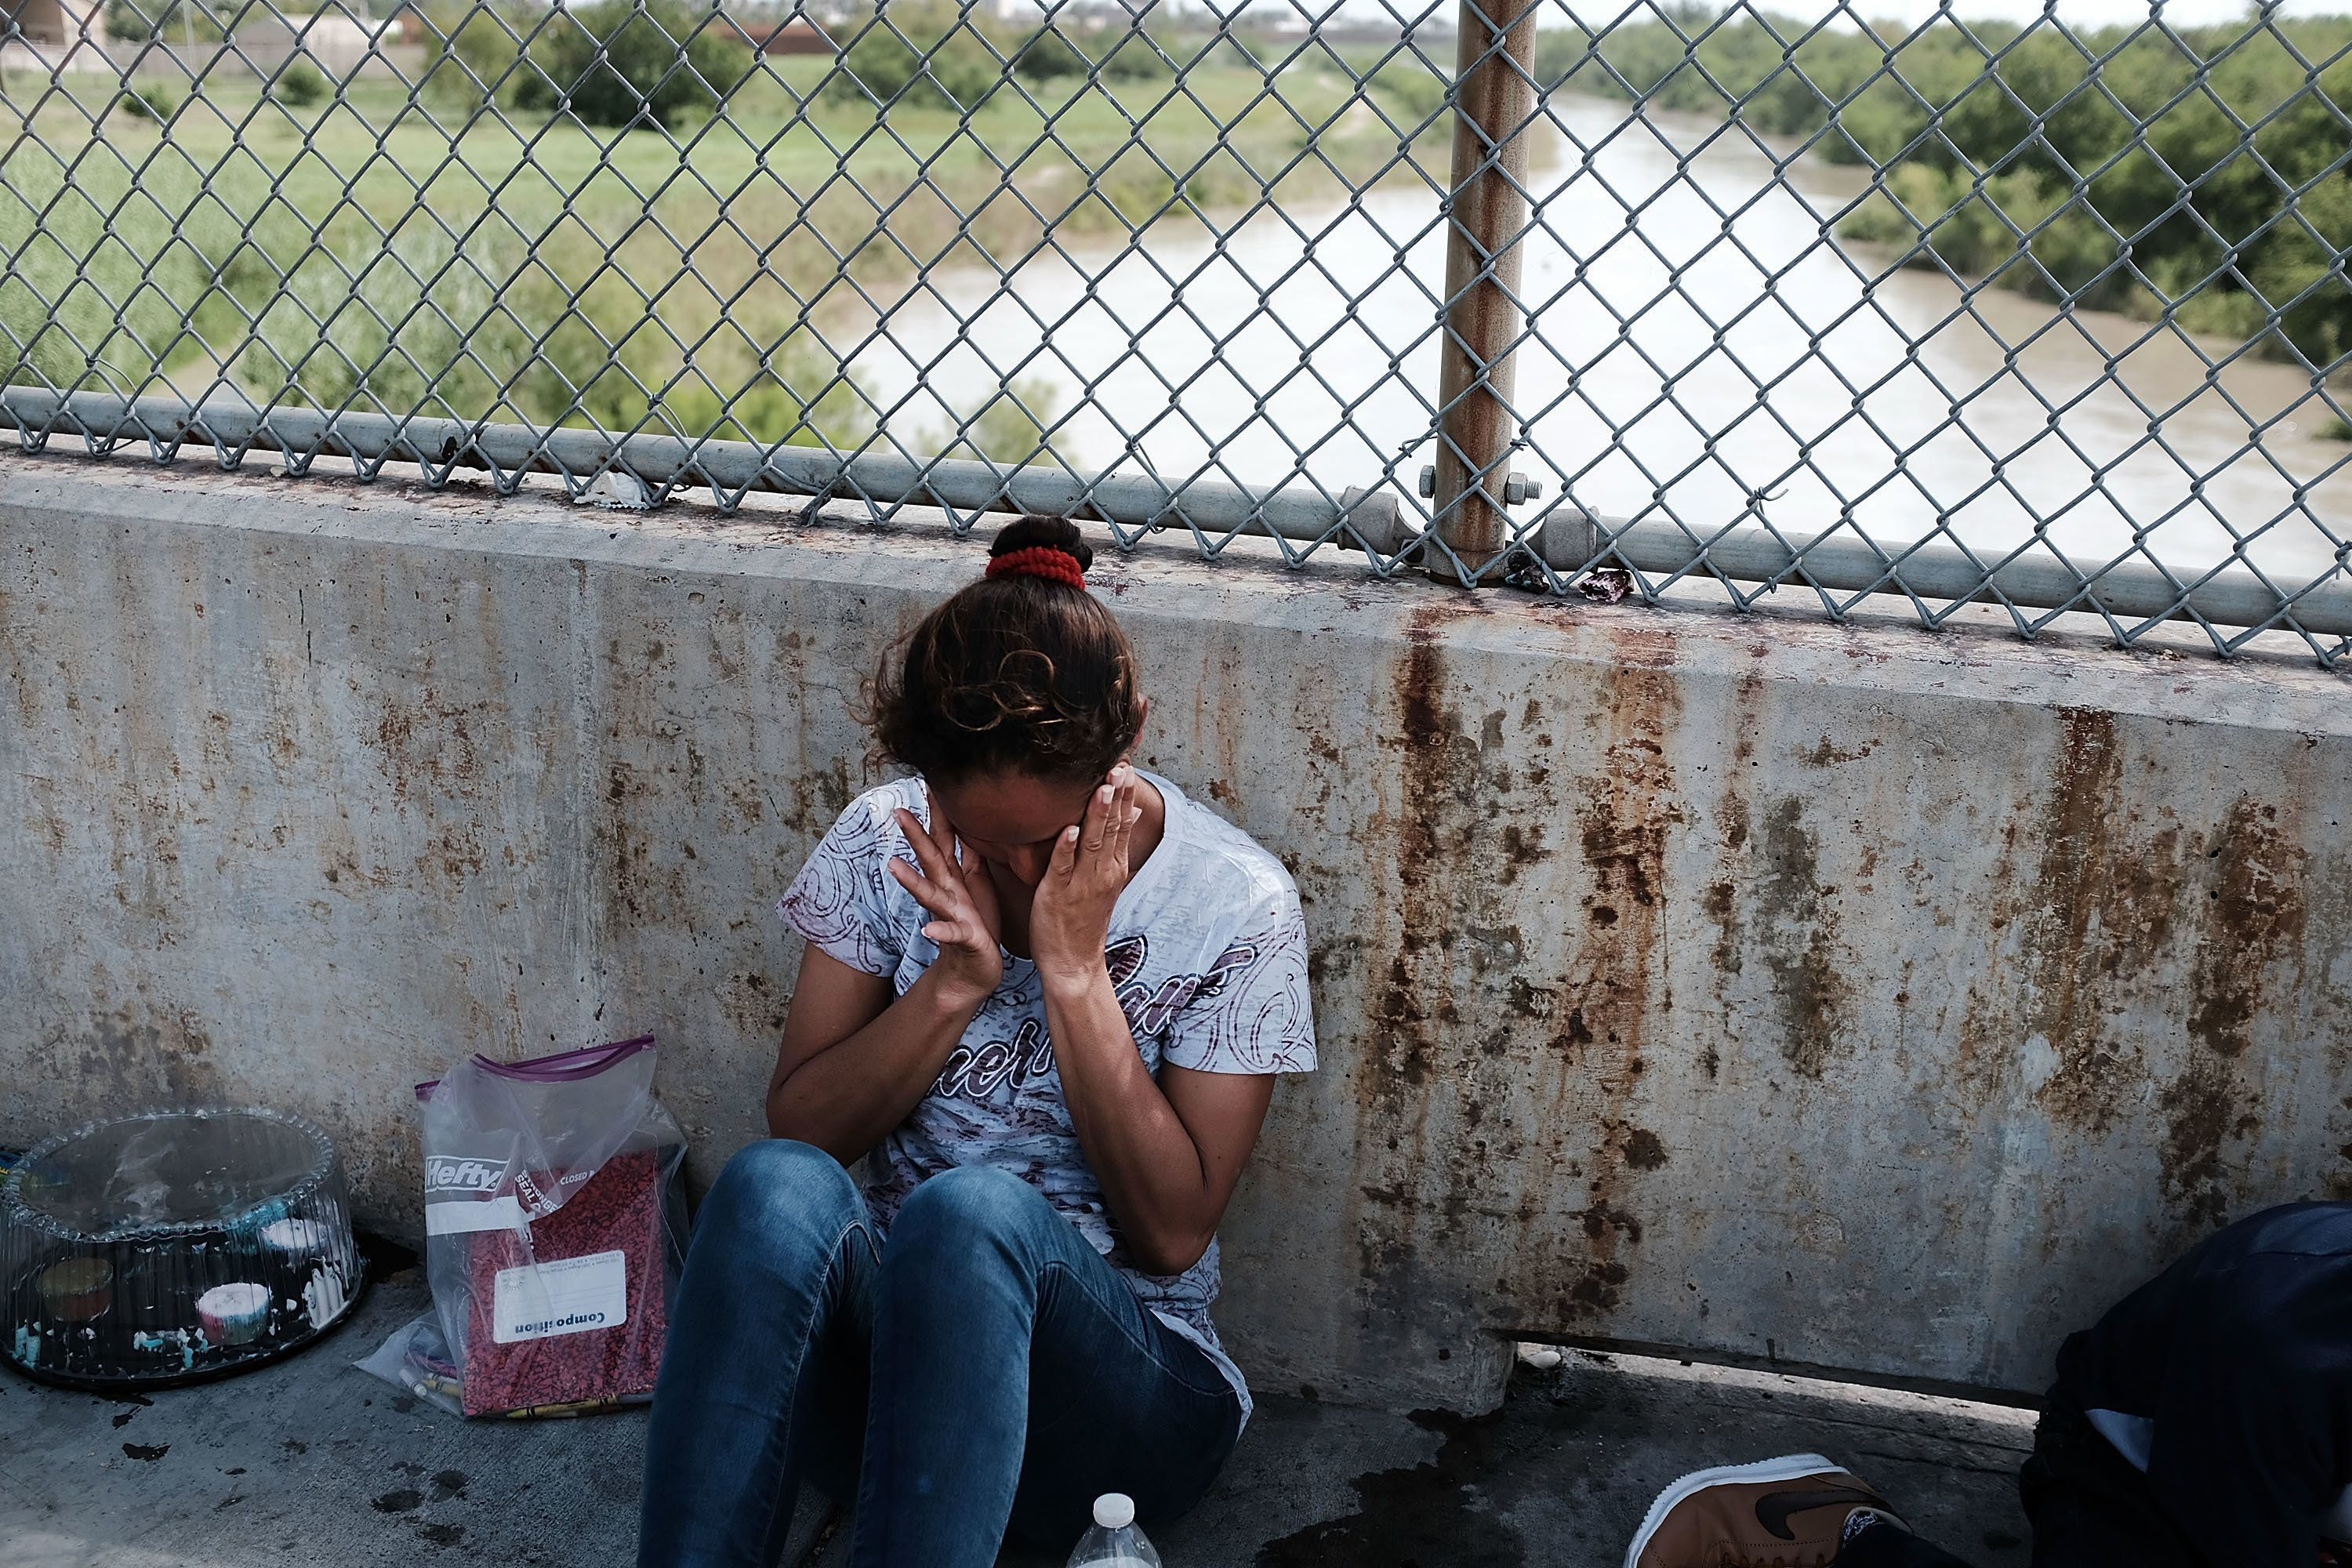 A Honduran woman, fleeing poverty and violence in her home country, waits along the border bridge after being denied entry in